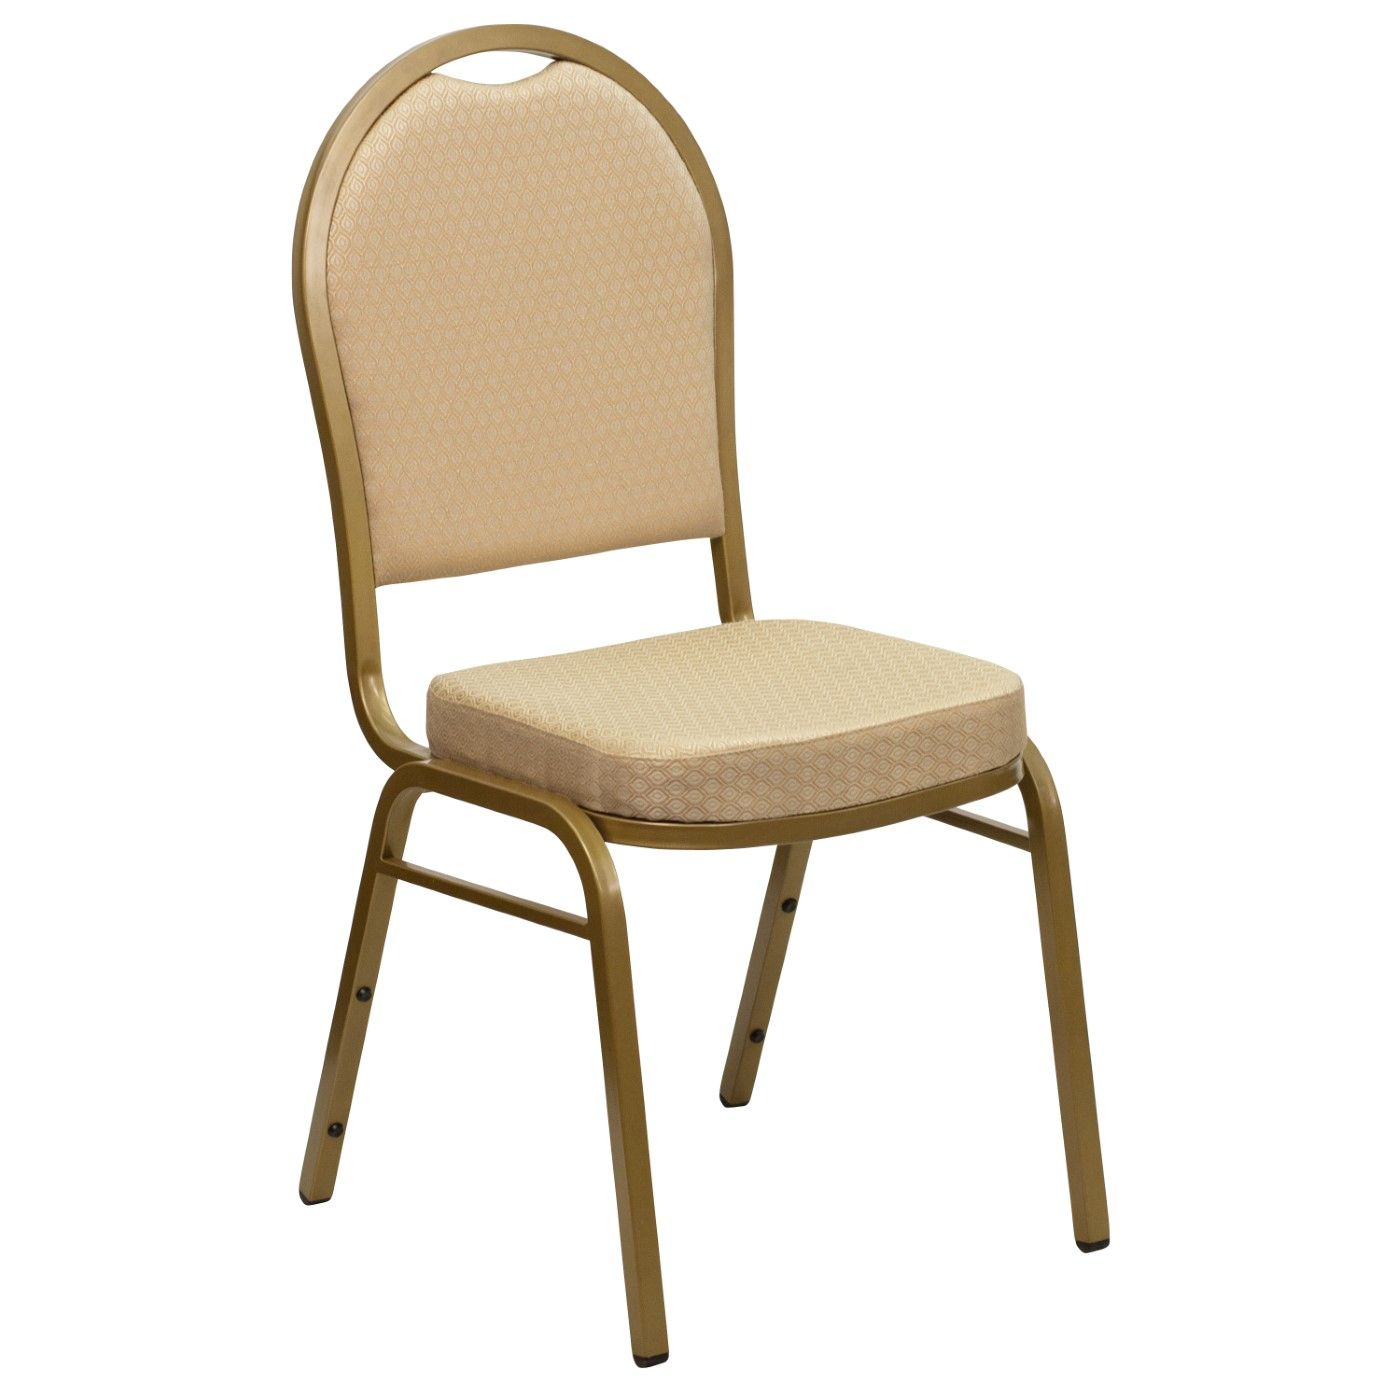 TOUGH ENOUGH Series Dome Back Stacking Banquet Chair in Beige Patterned Fabric - Gold Frame